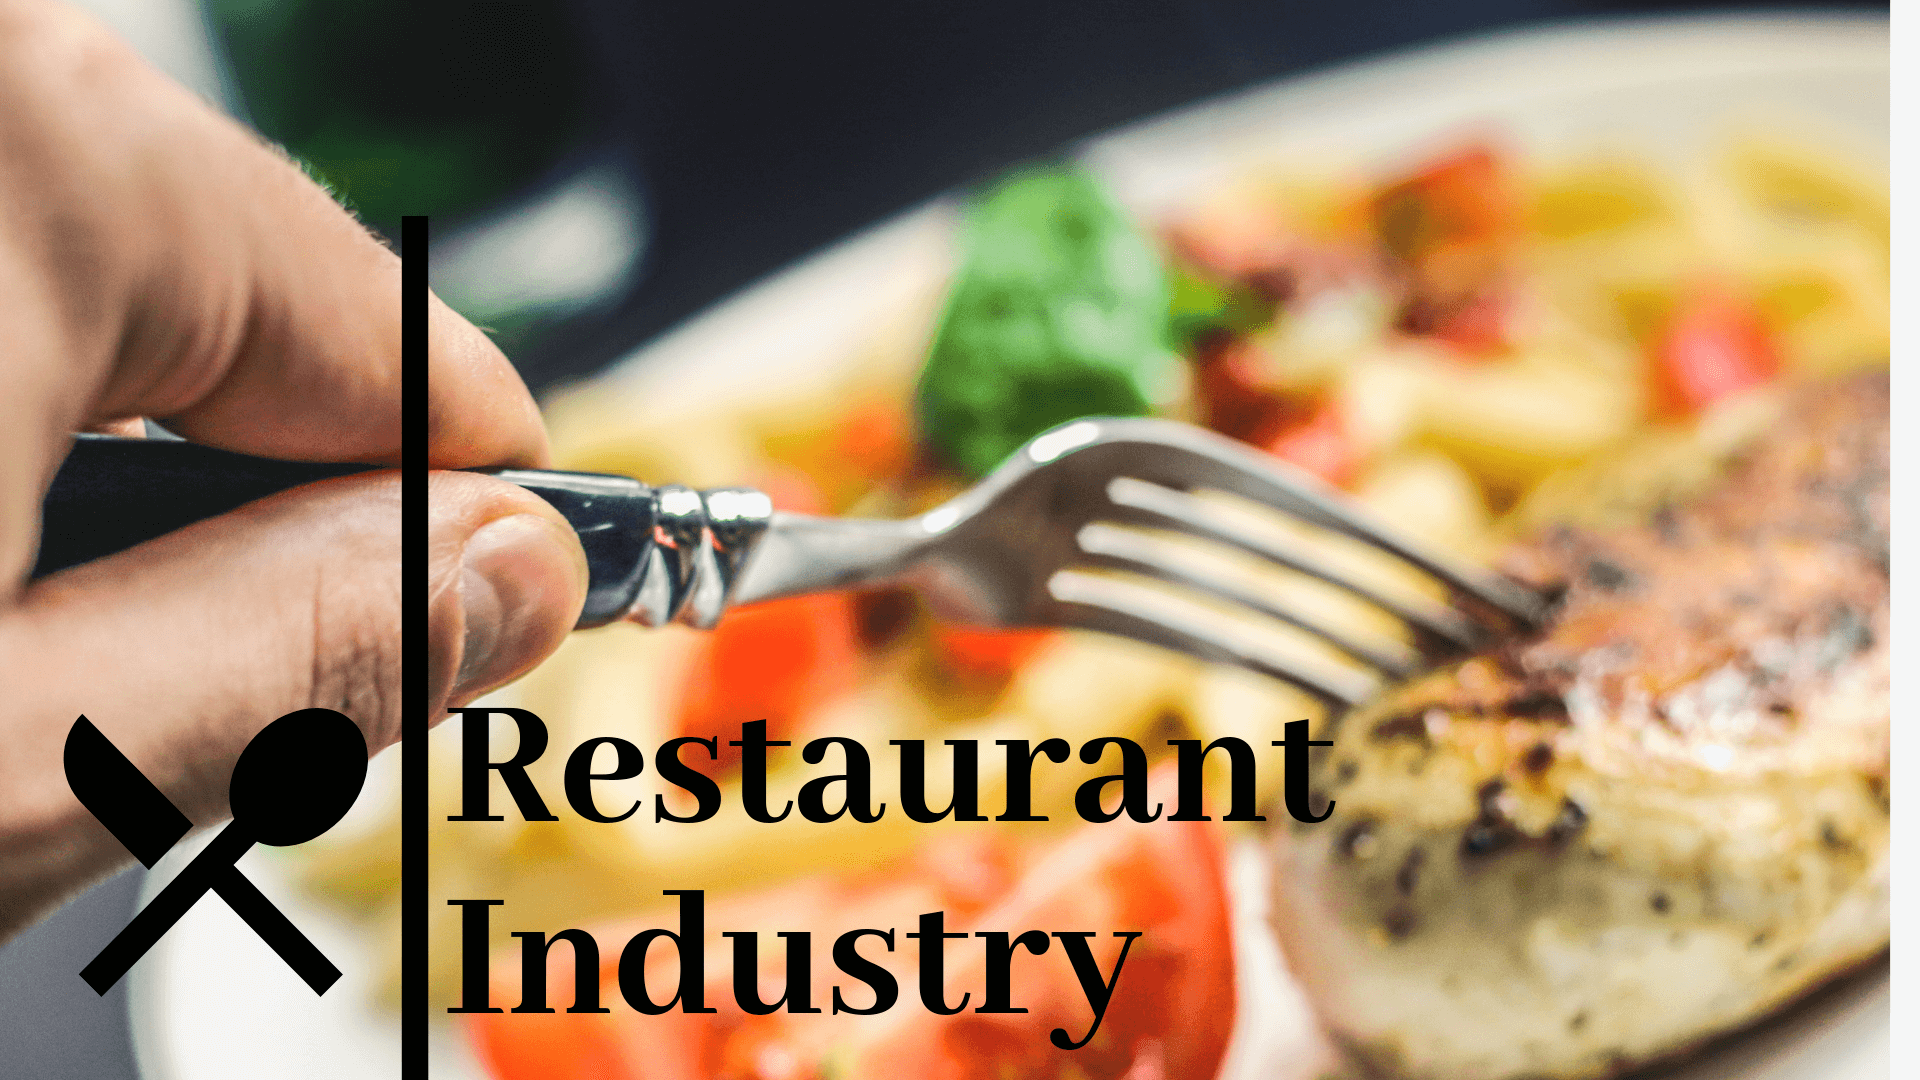 Restaurant Industry TRooTech Business Solutions